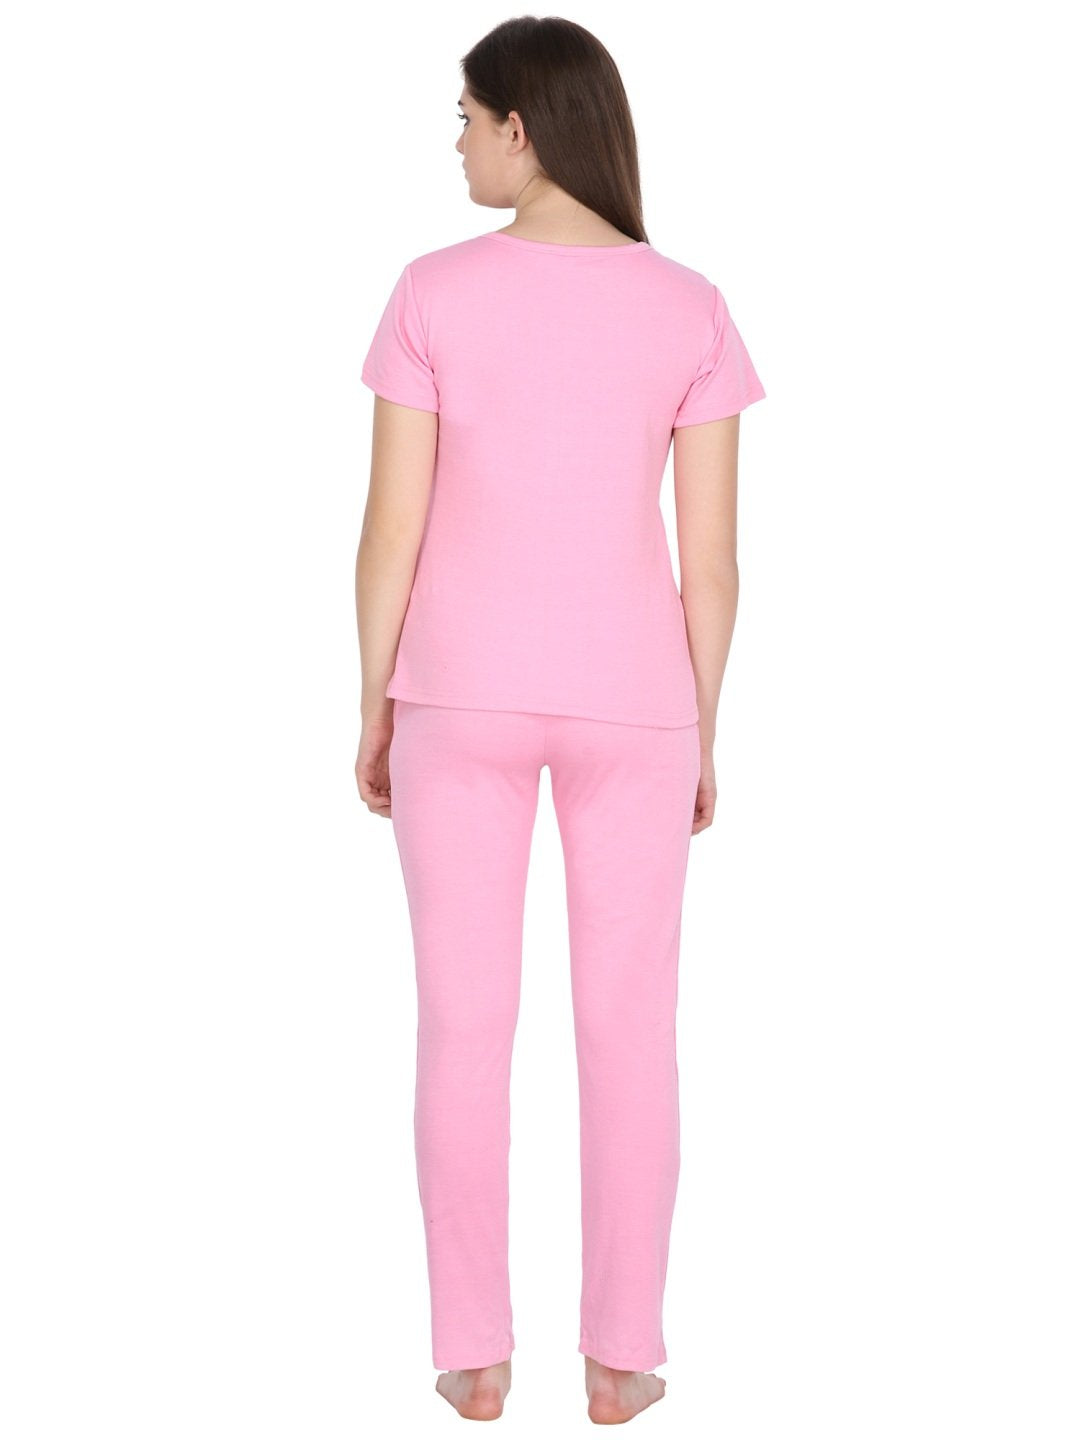 Klamotten Women's Solid Nightsuit N70Rb